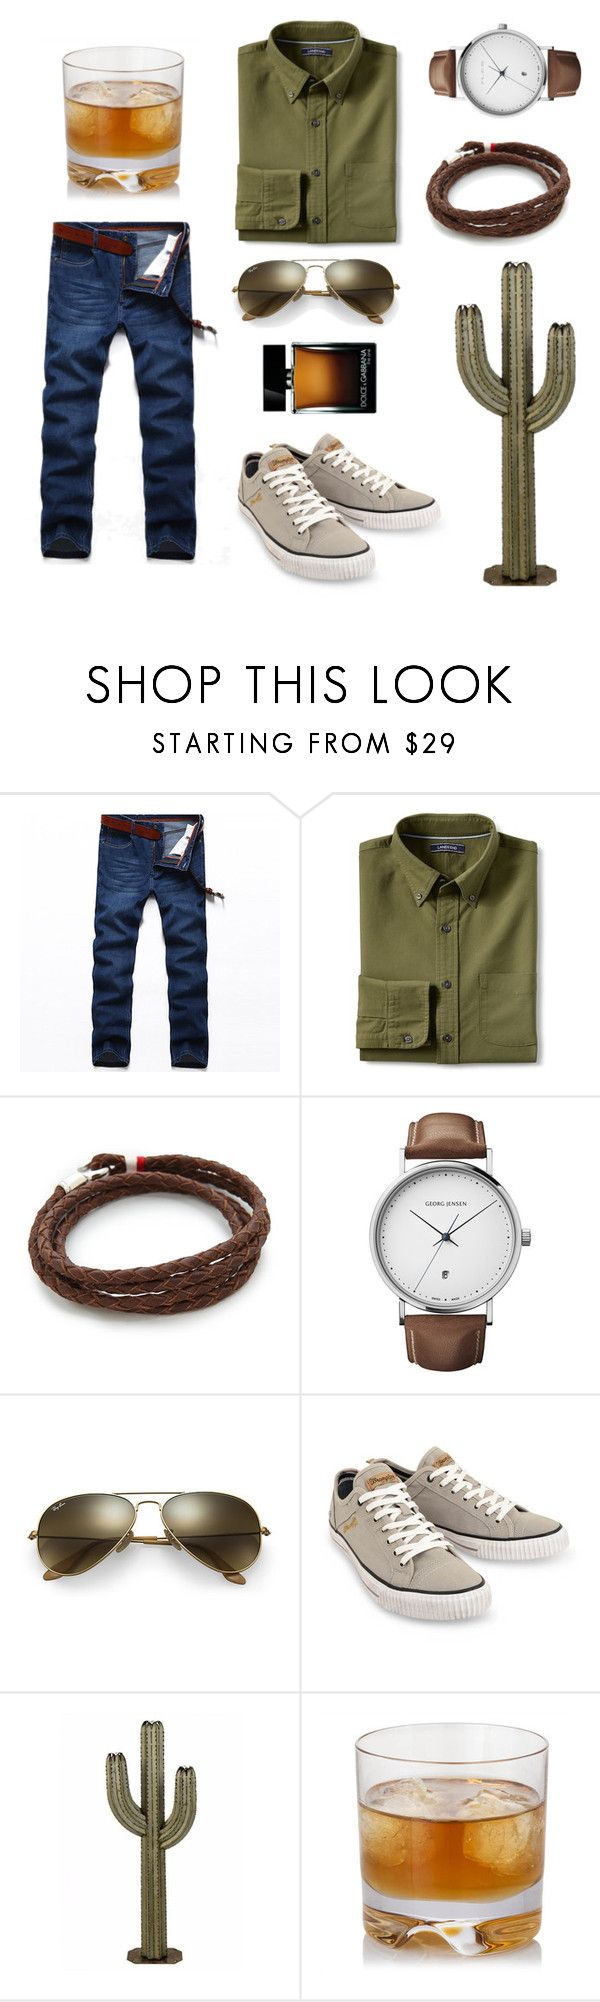 """Don't be a prick 🌵"" by jess-heppell-designer on Polyvore featuring Lands' End, MIANSAI, Georg Jensen, Ray-Ban, Wrangler, Dolce&Gabbana, men's fashion, menswear, MensFashion and earthy"